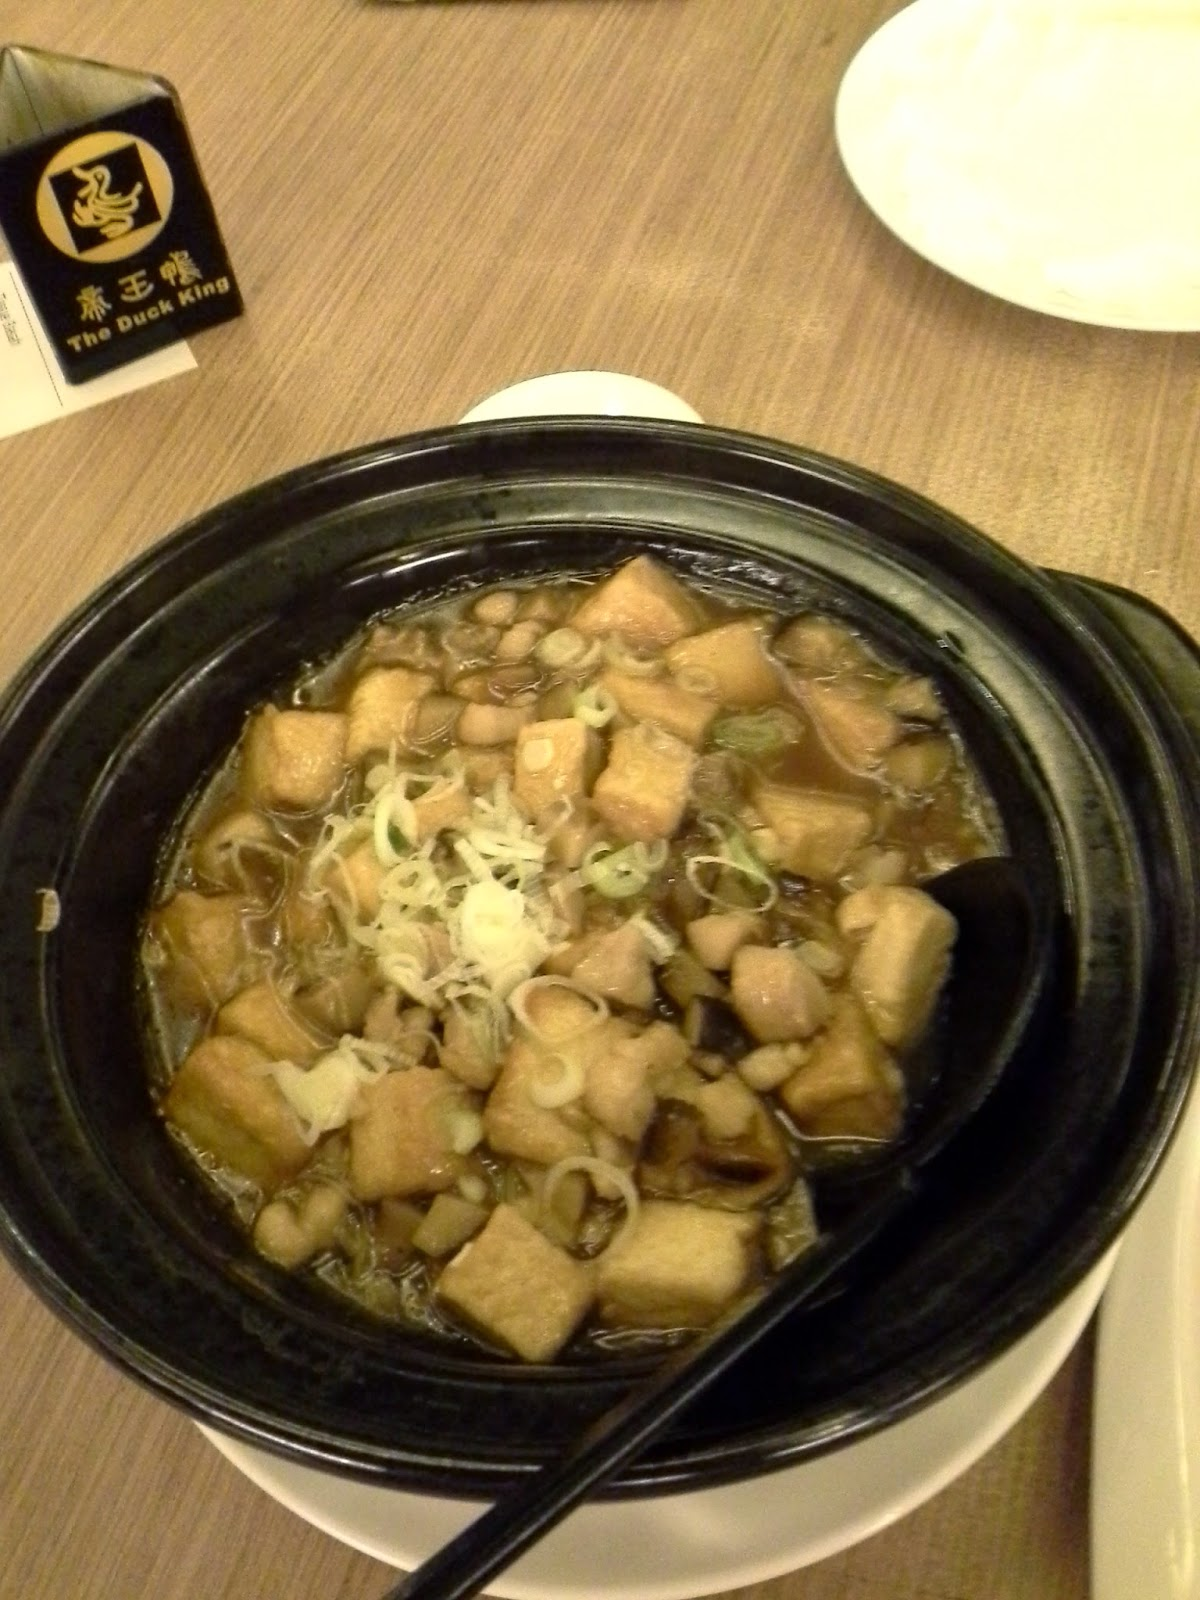 Every little thing that happen in my life food review for Aja asian cuisine menu